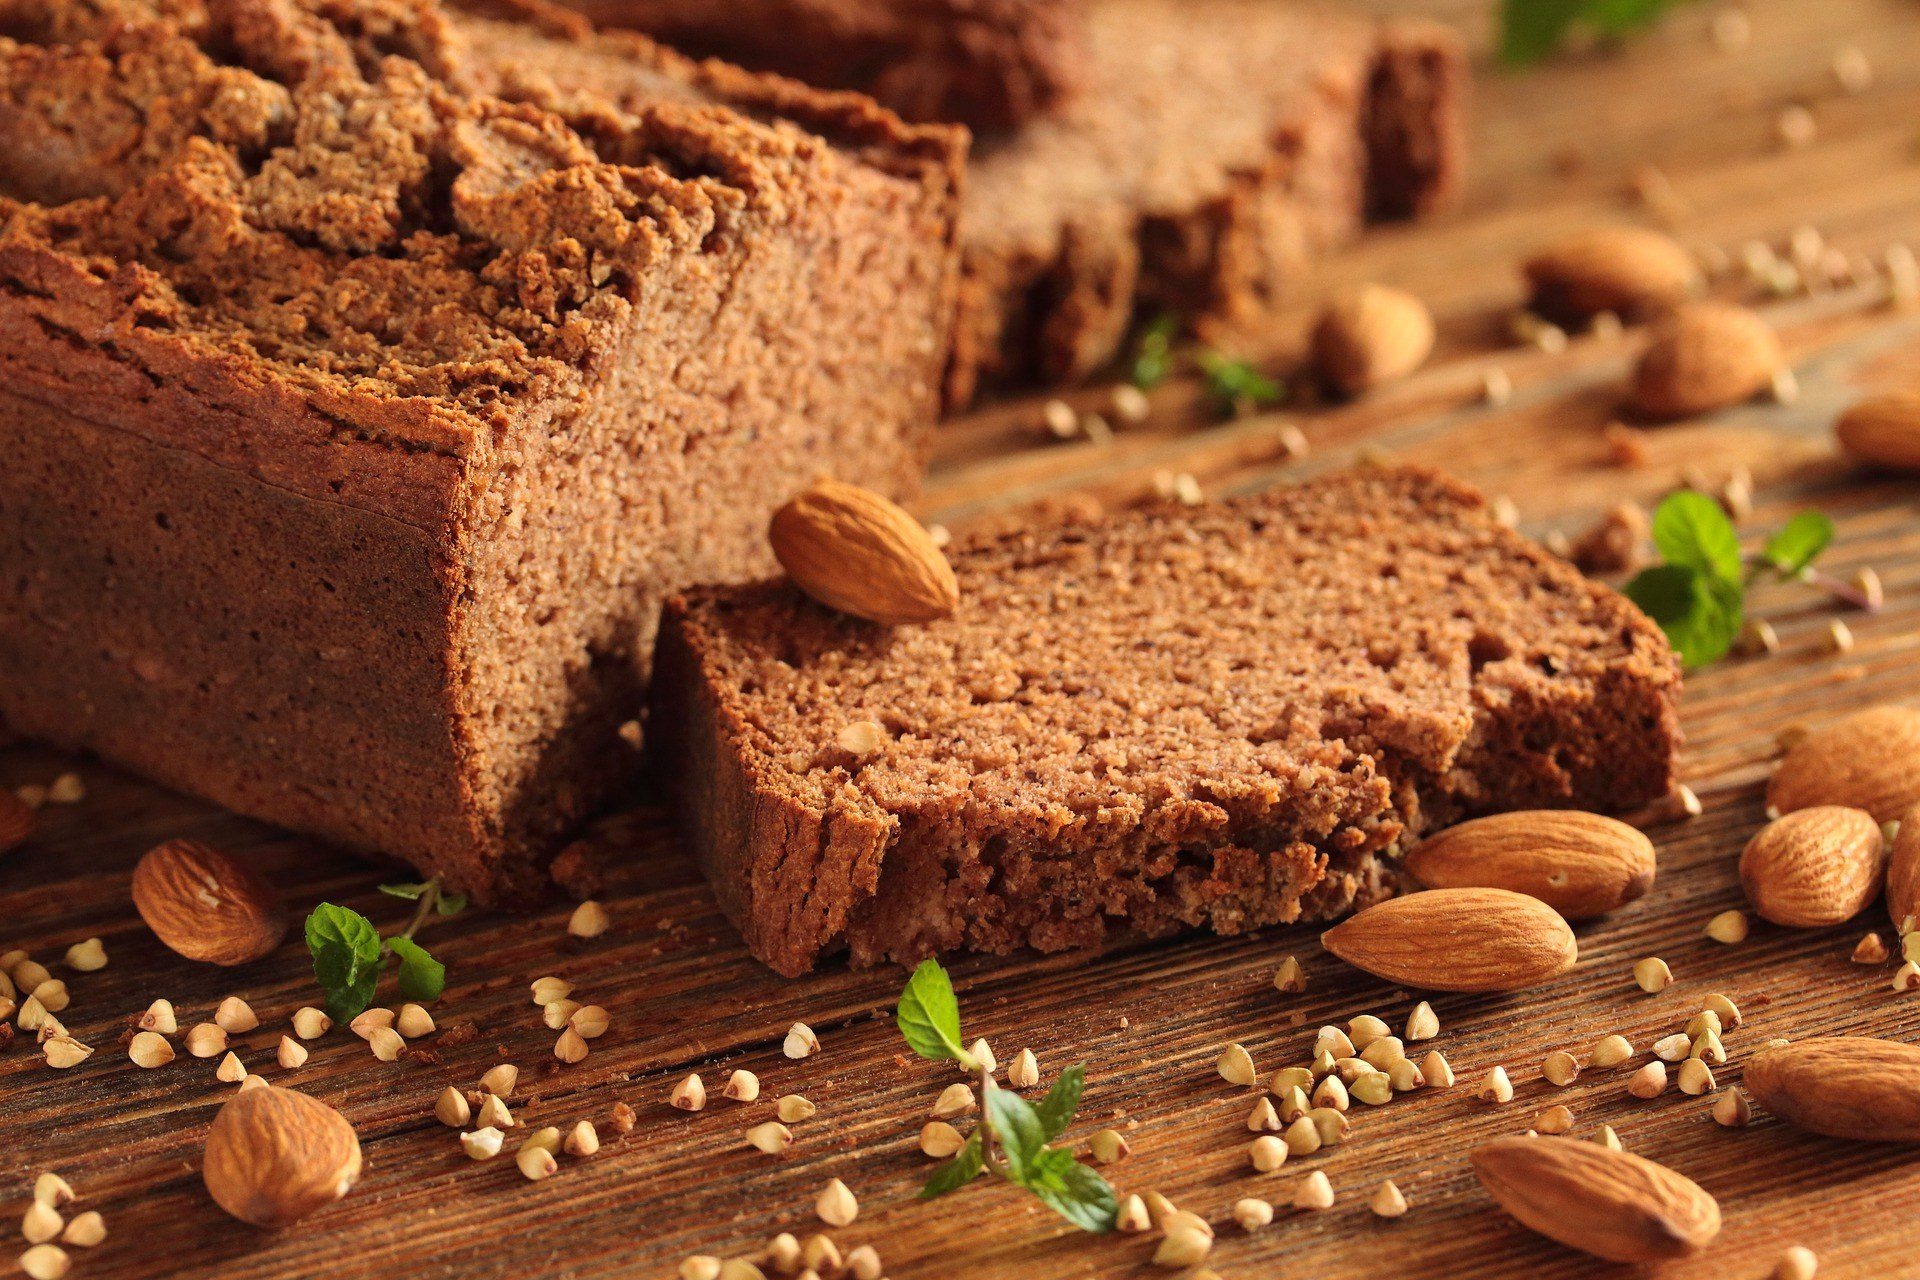 Gluten Free Baking_Almonds_Bread Loaf